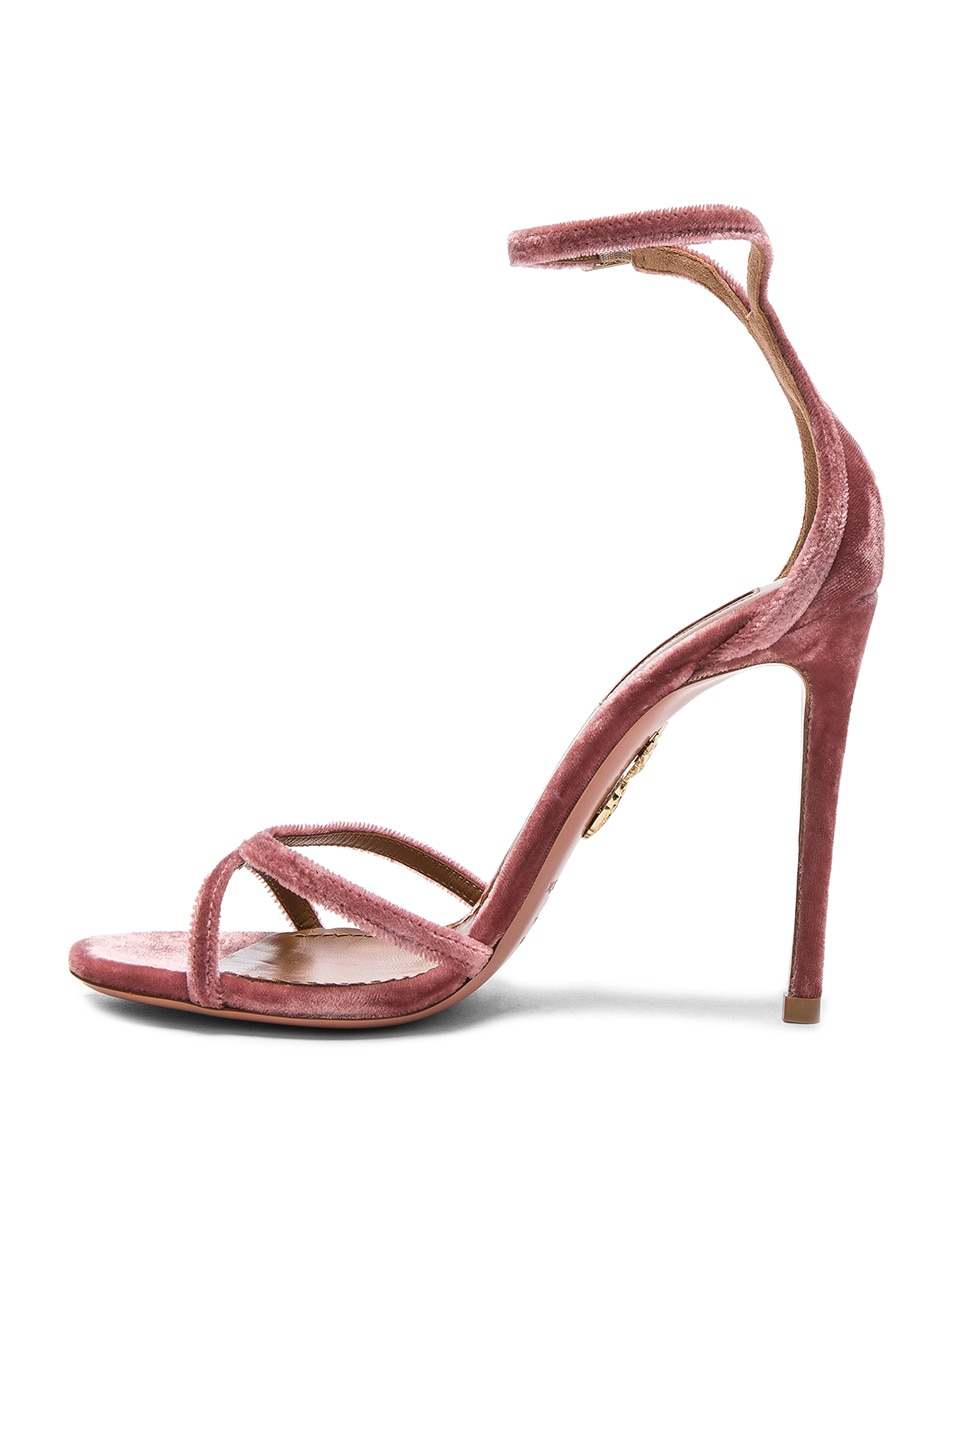 Image 5 of Aquazzura Velvet Purist Sandal Heels in Antique Rose